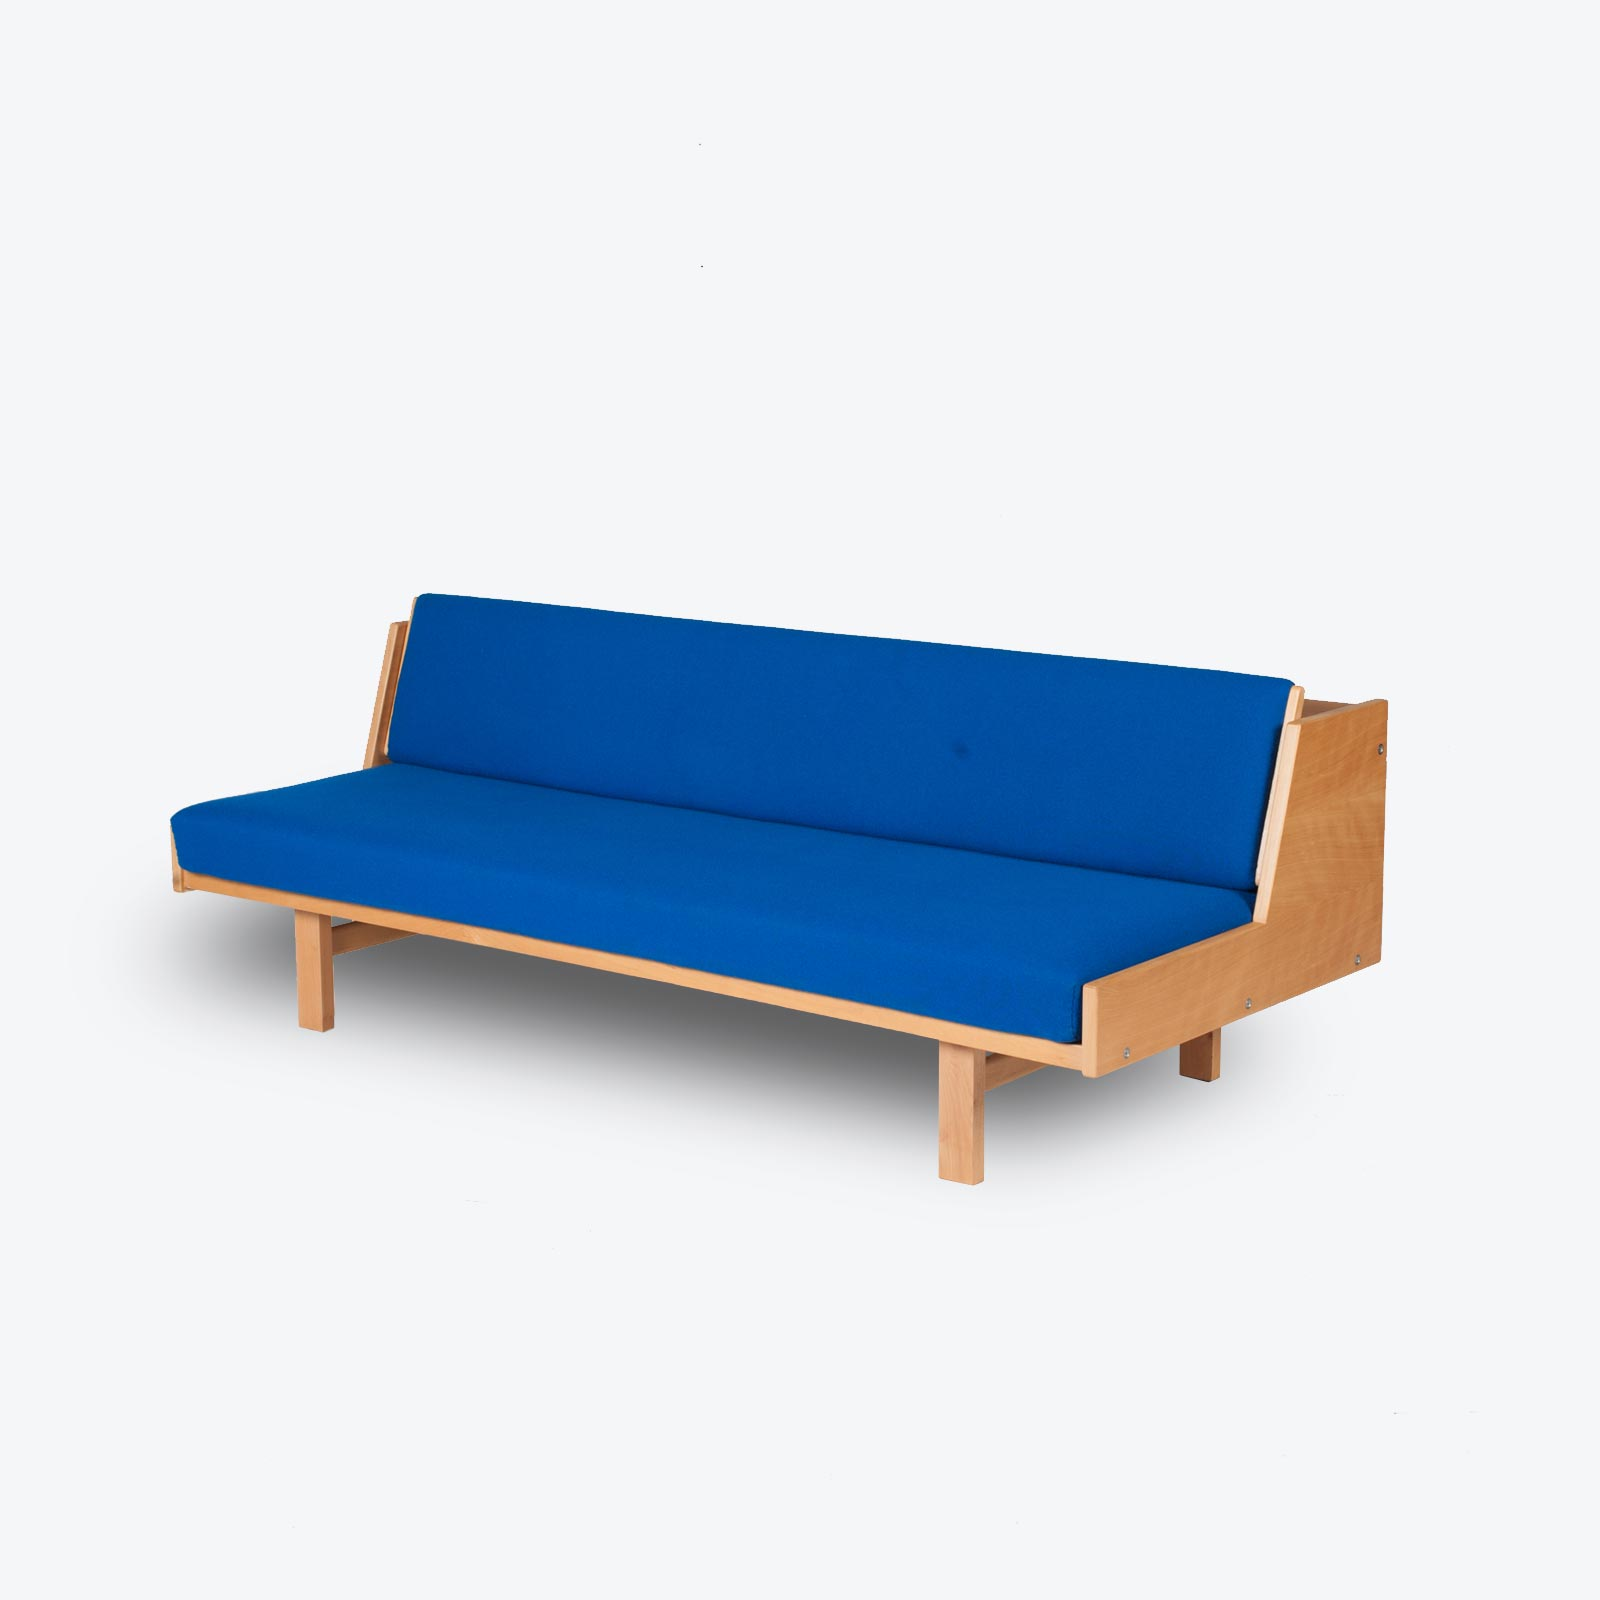 Ge 258 Daybed By Hans J. Wegner In Beech With Original Blue Upholstery For Getama, 1960s, Denmark Hero